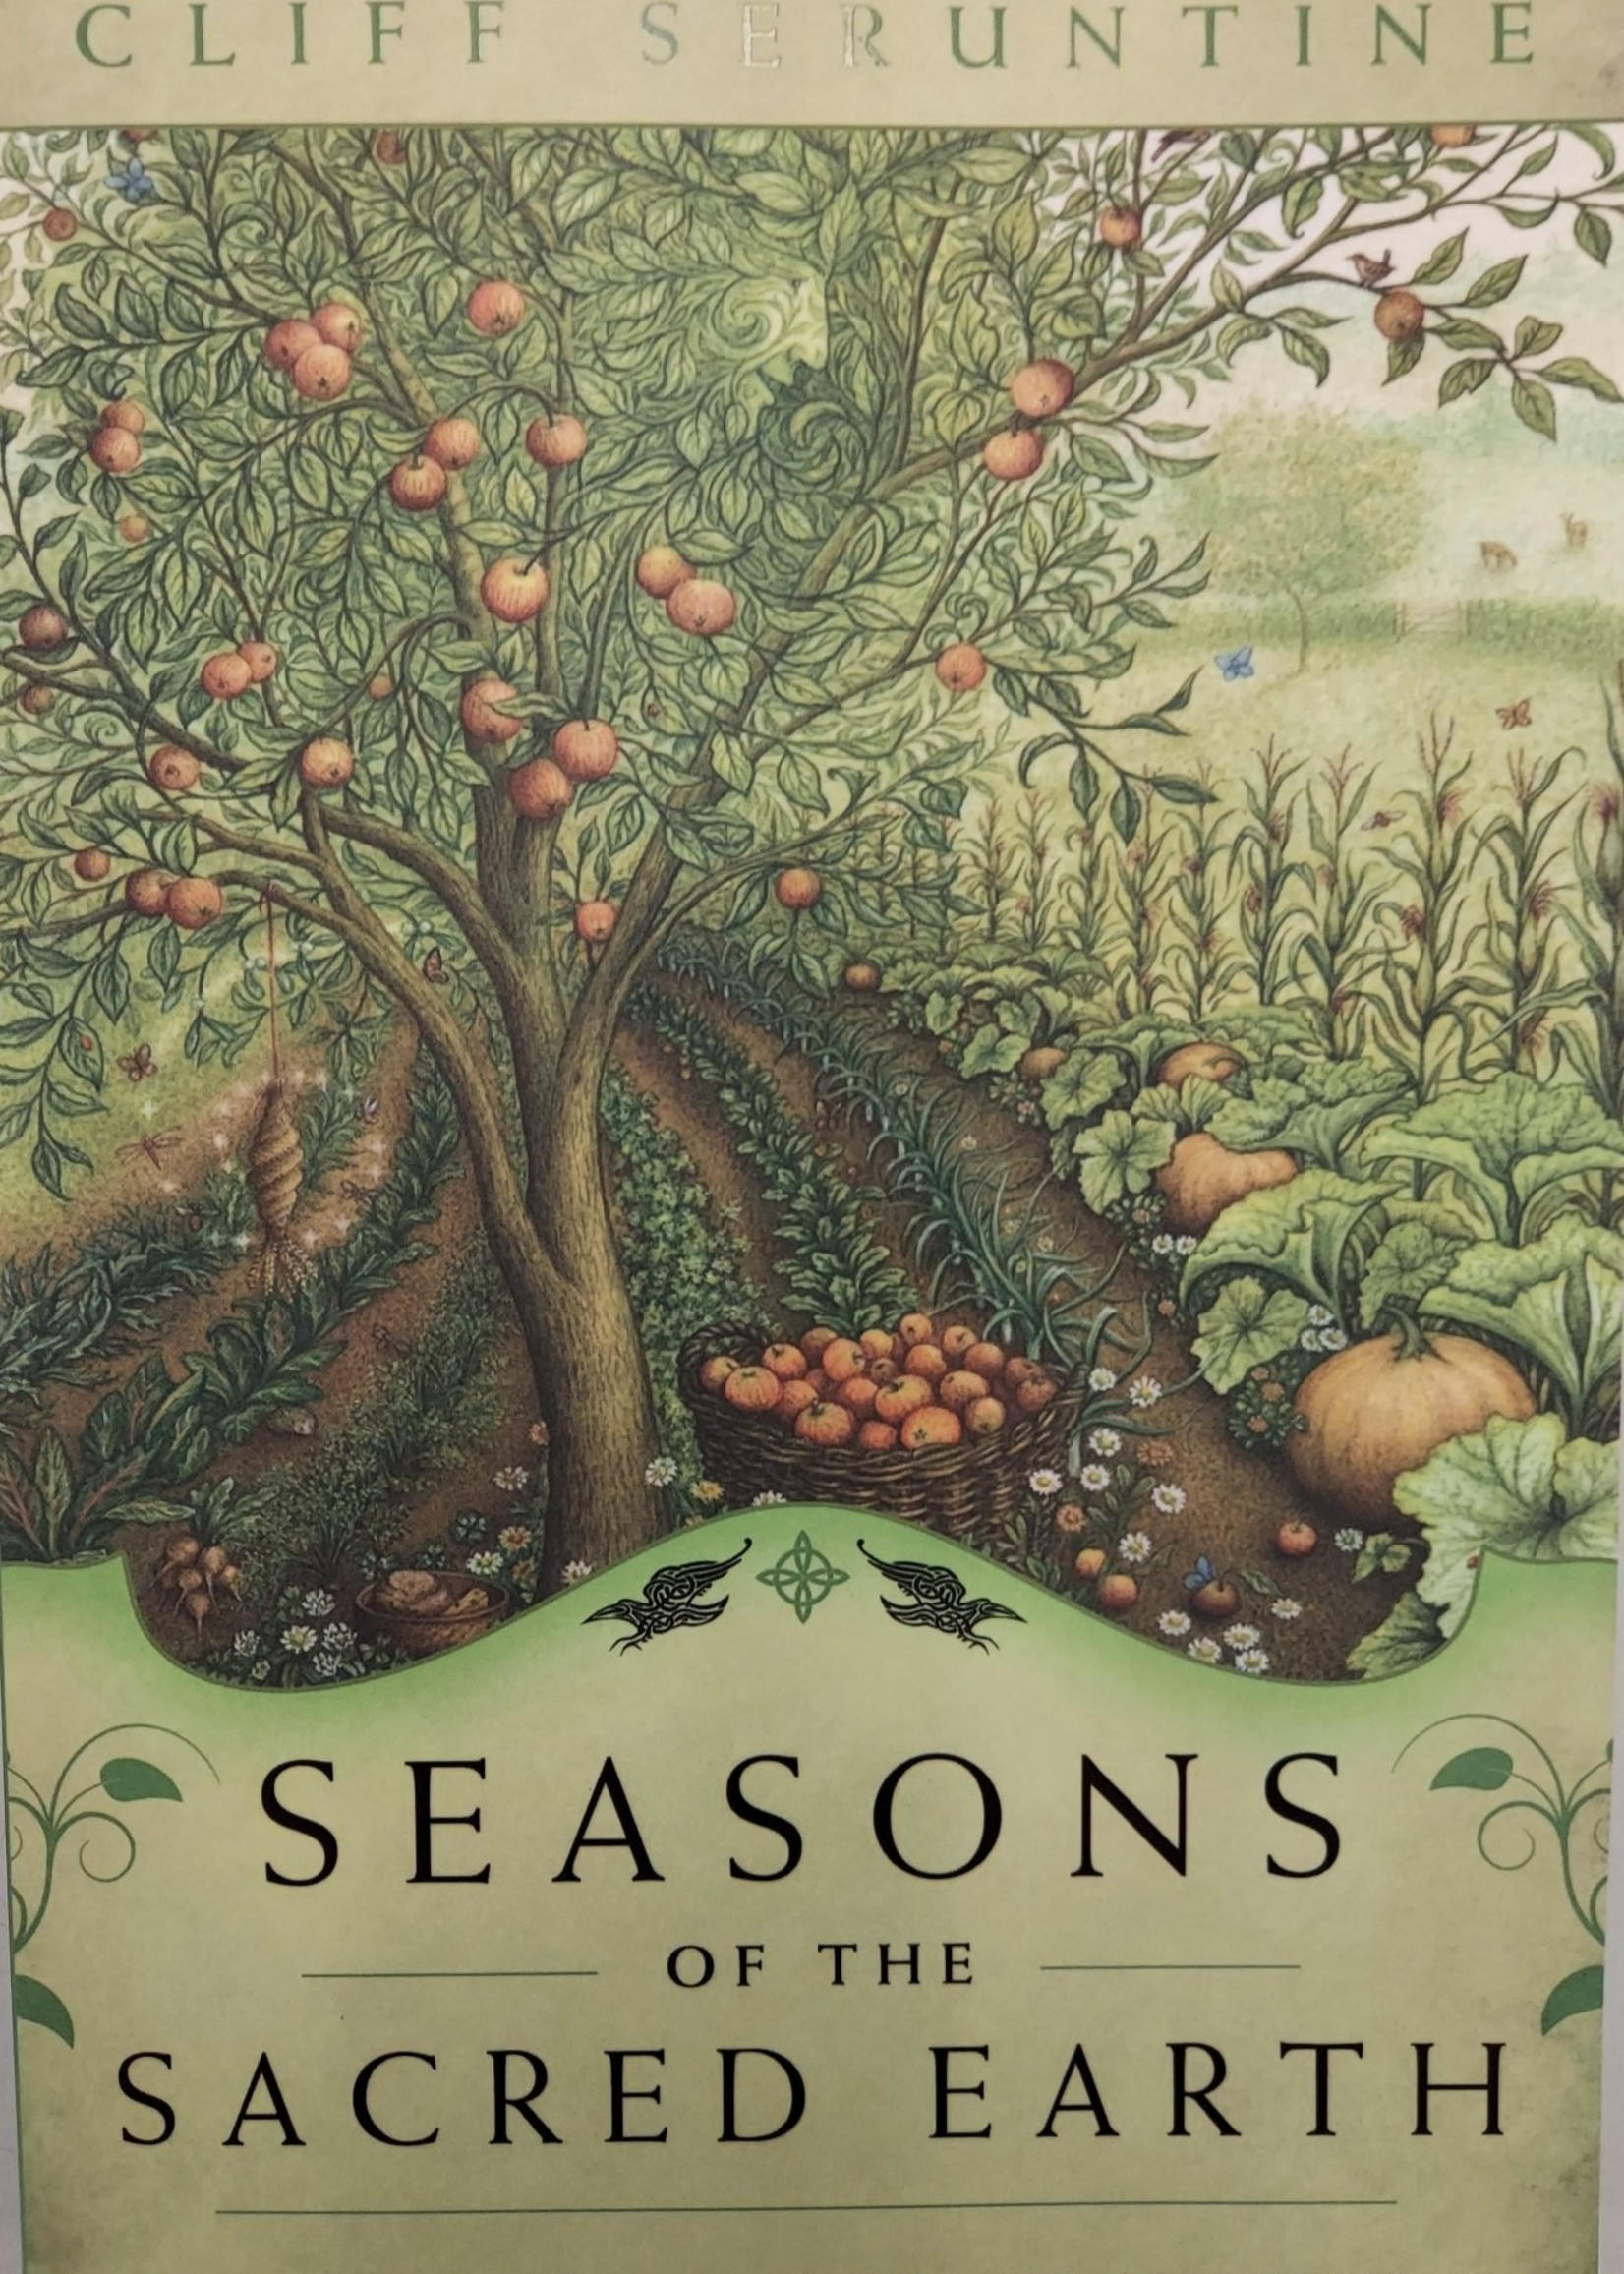 Seasons of the Sacred Earth -  BY CLIFF SERUNTINE